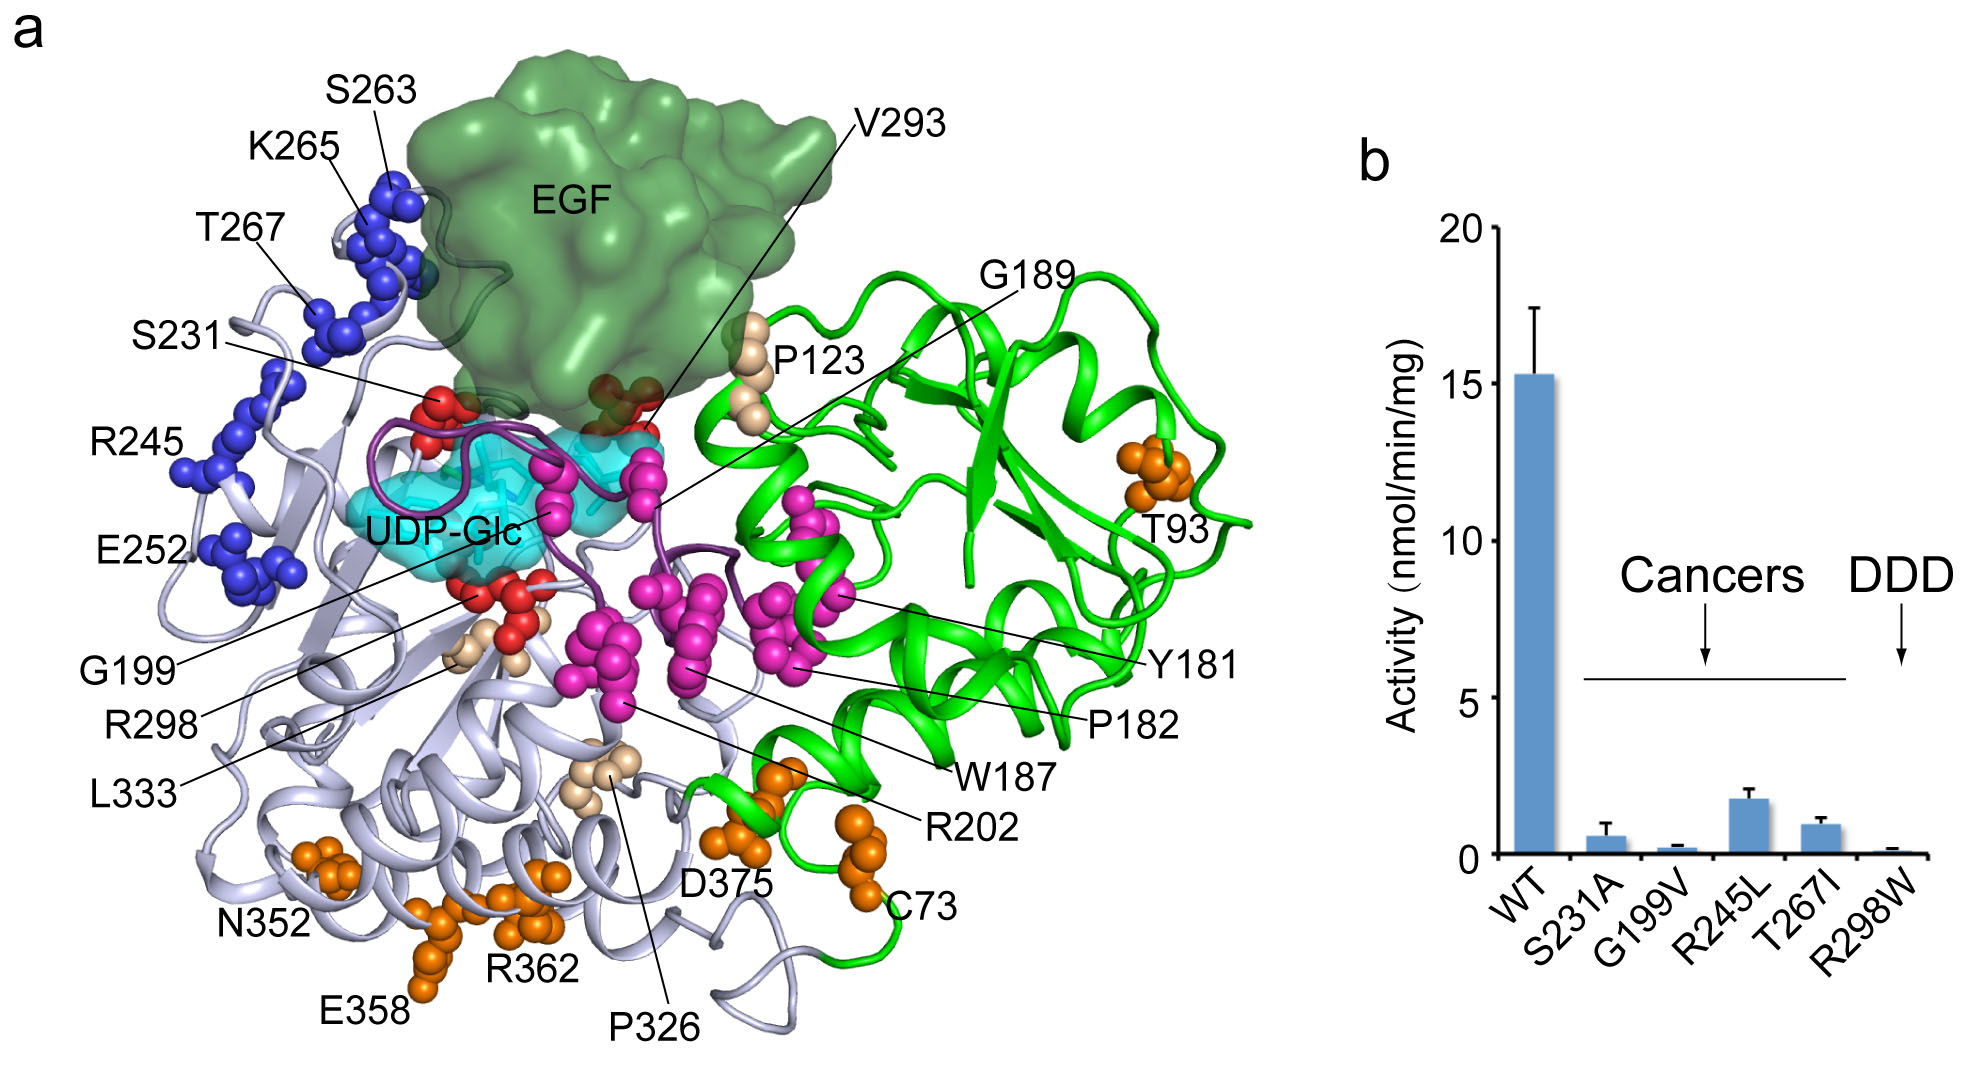 The Structure of an Enzyme Linked to a Key Cell-Signaling Protein